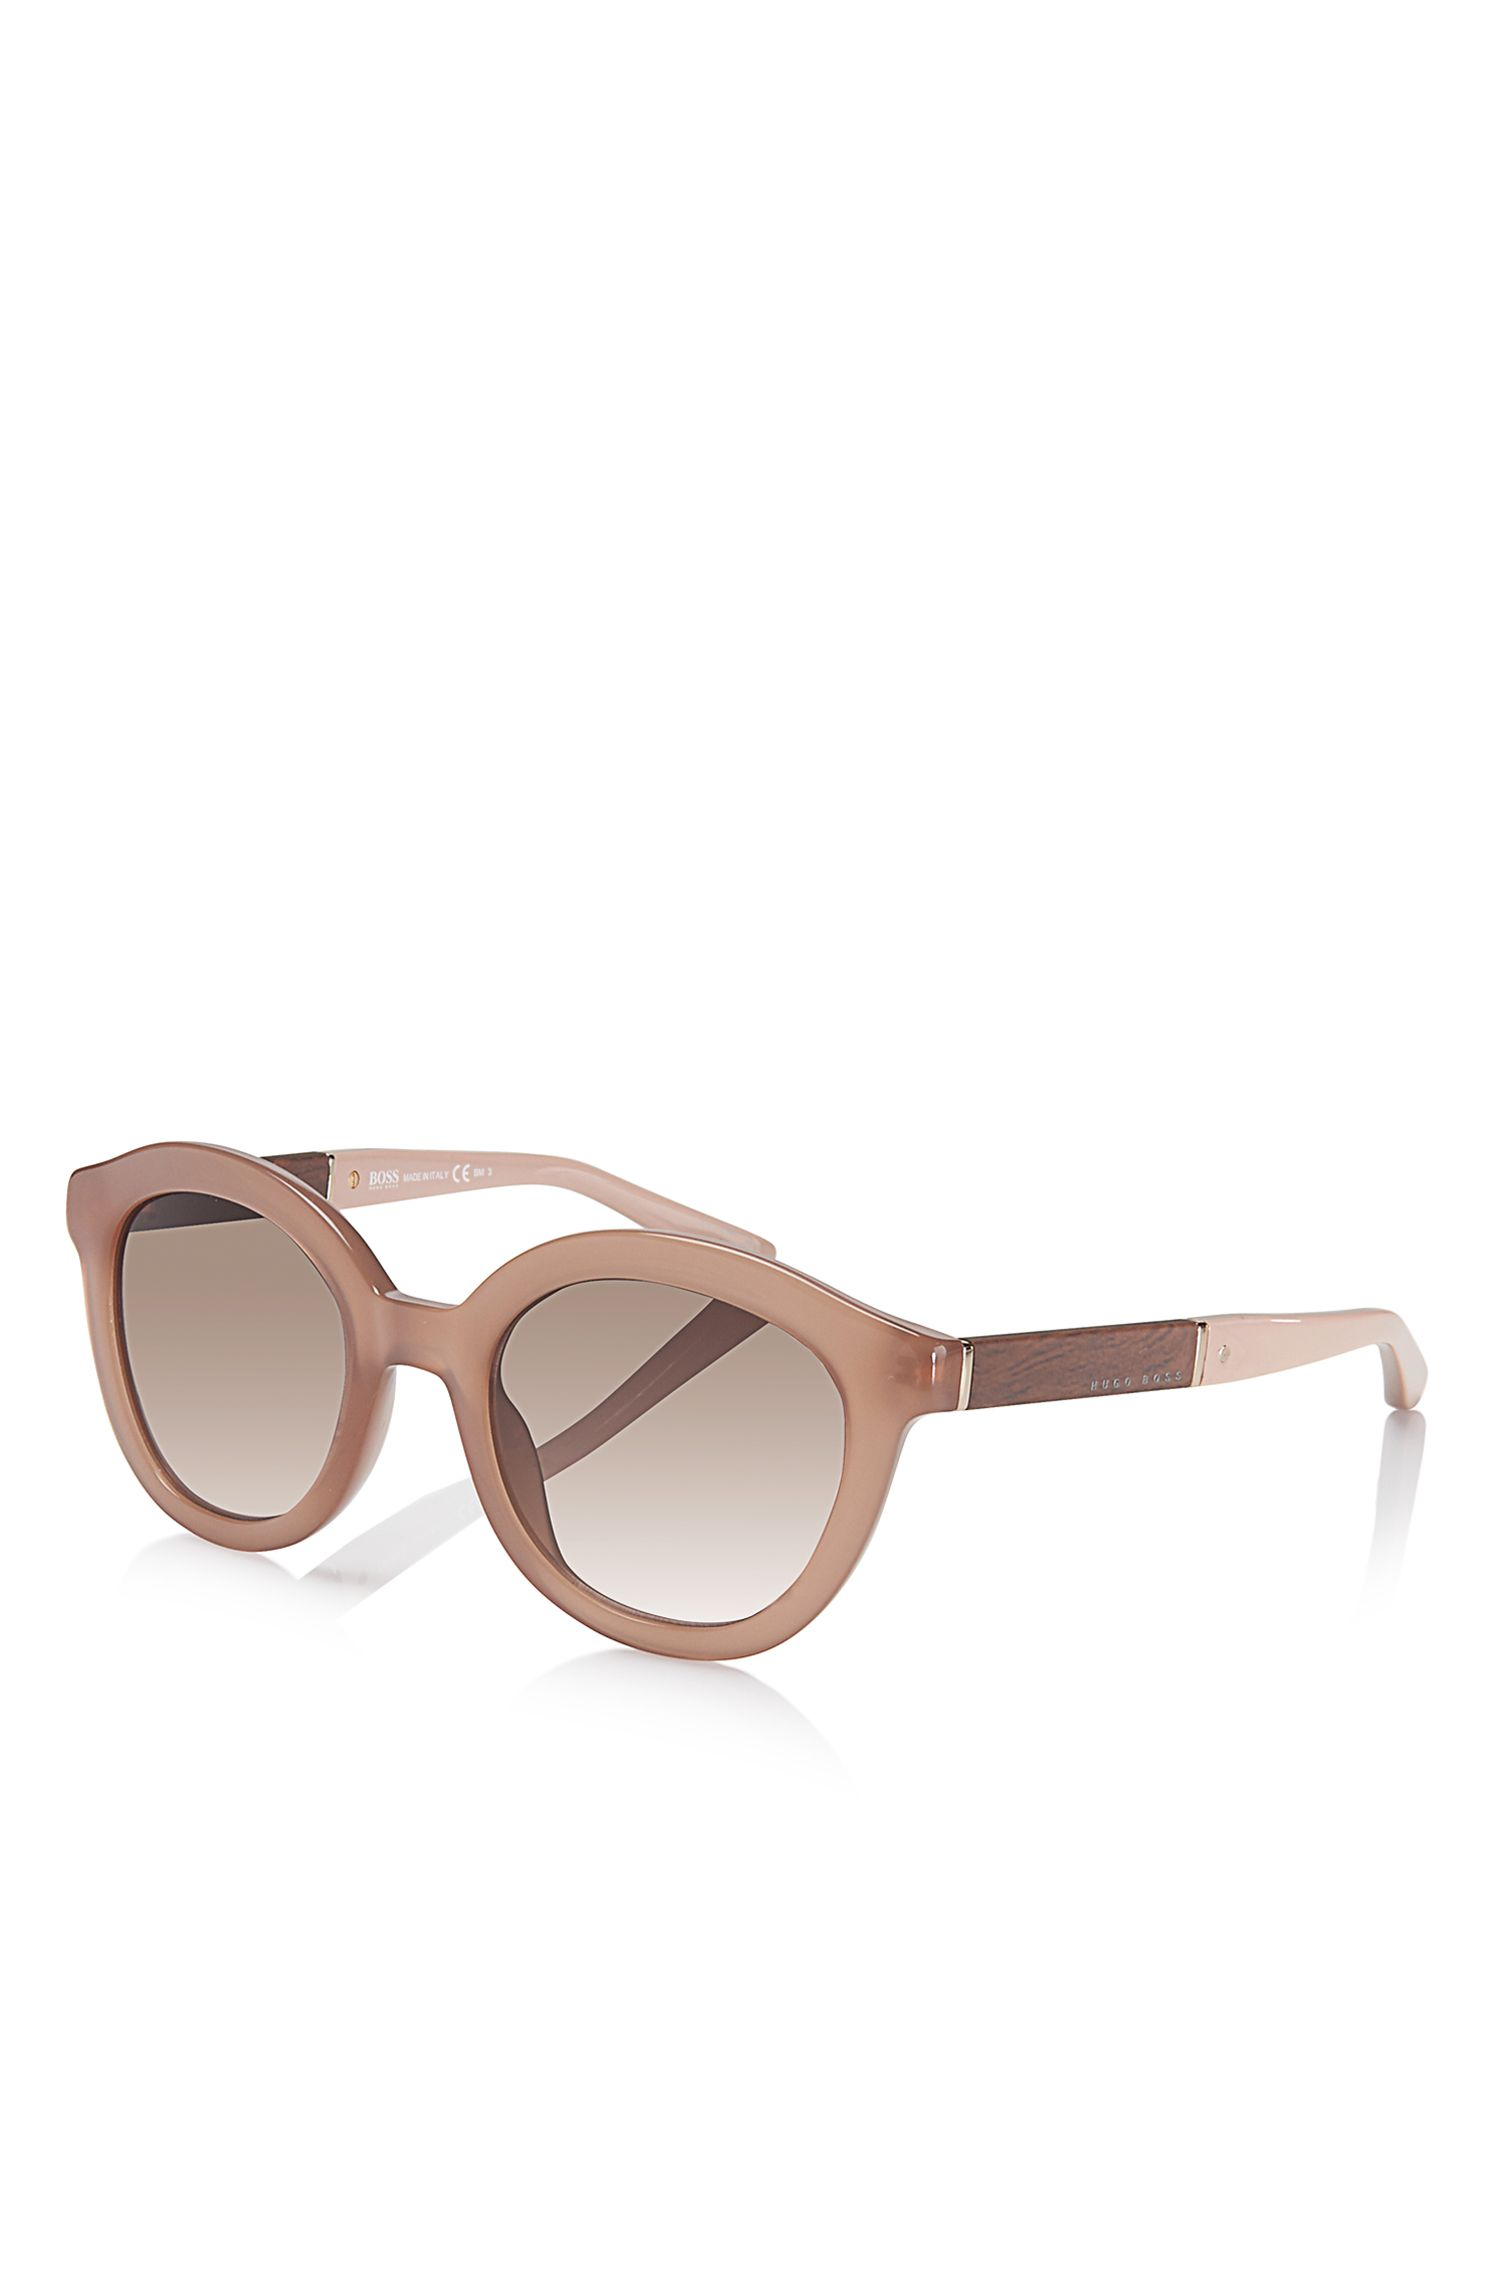 'BOSS 0662S' | Rounded Vintage Wood Detailed Sunglasses